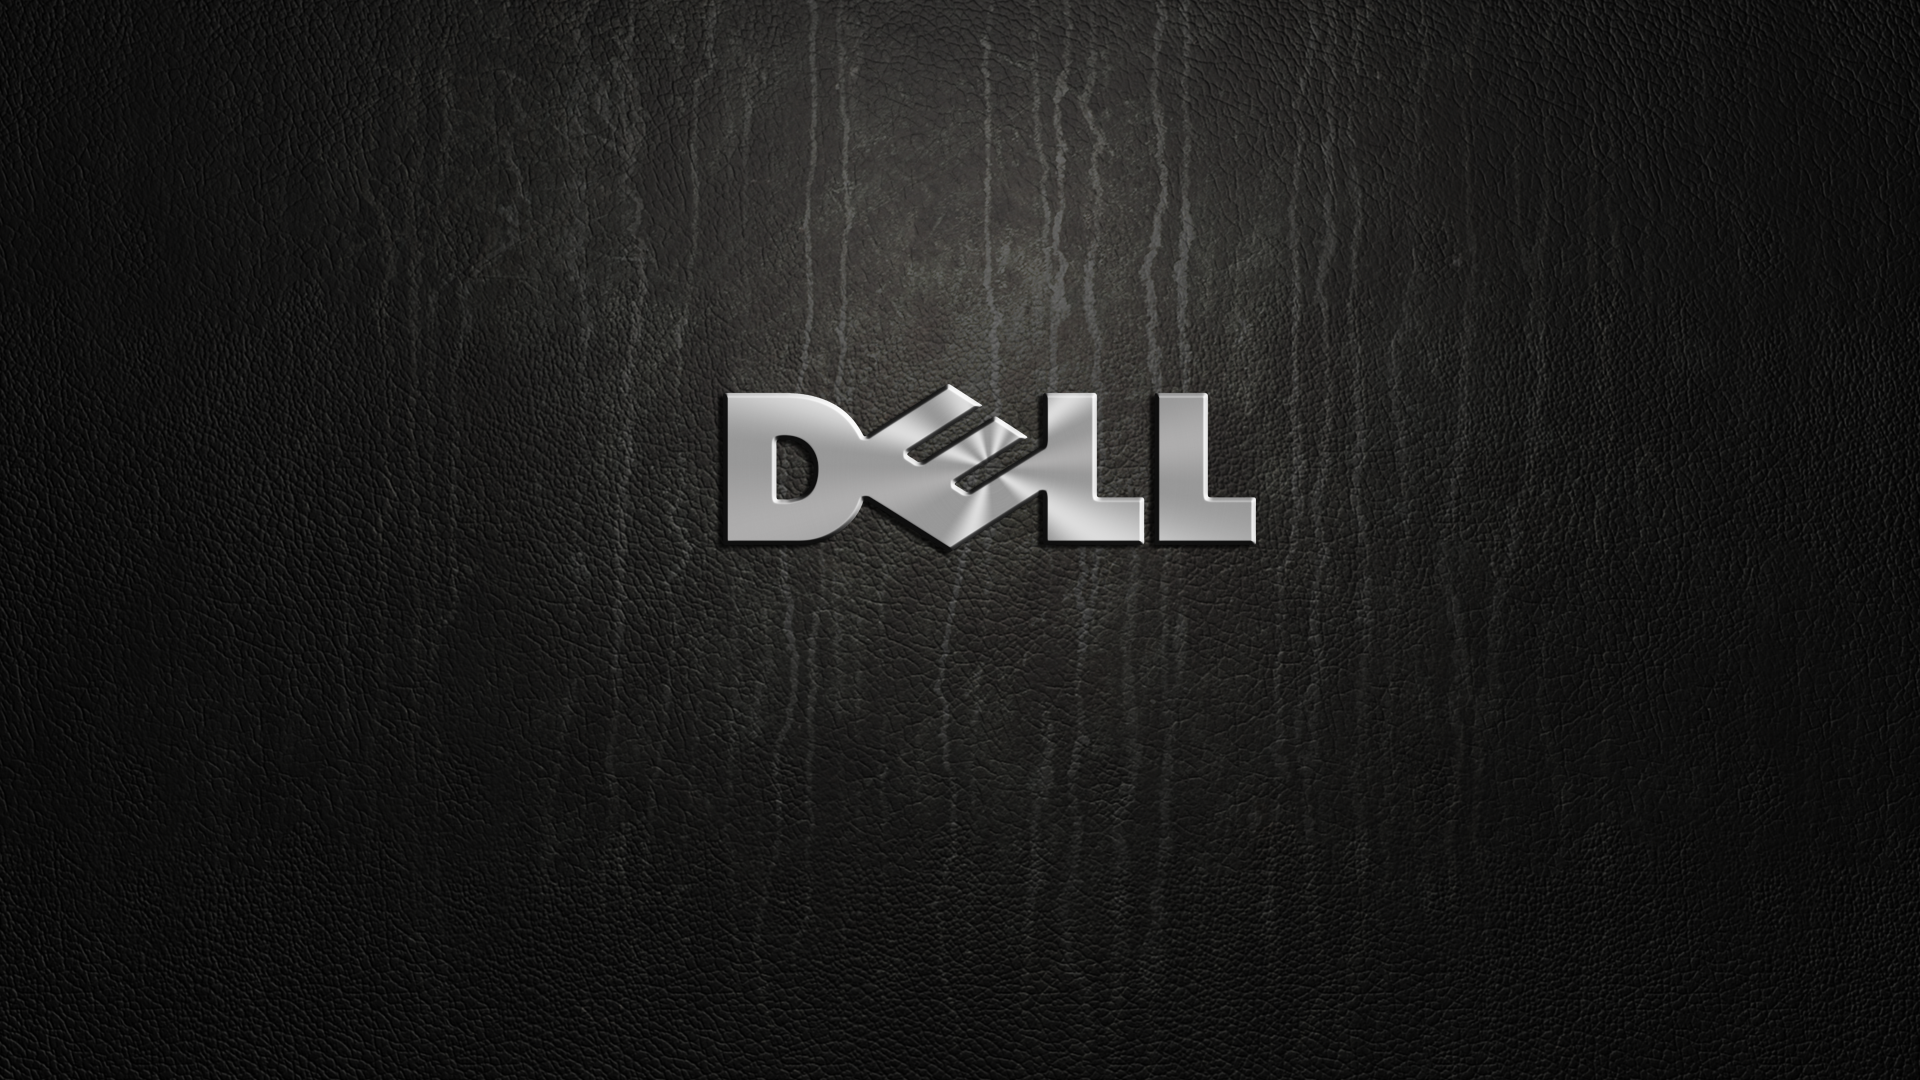 3 Dell HD Wallpapers | Background Images - Wallpaper Abyss